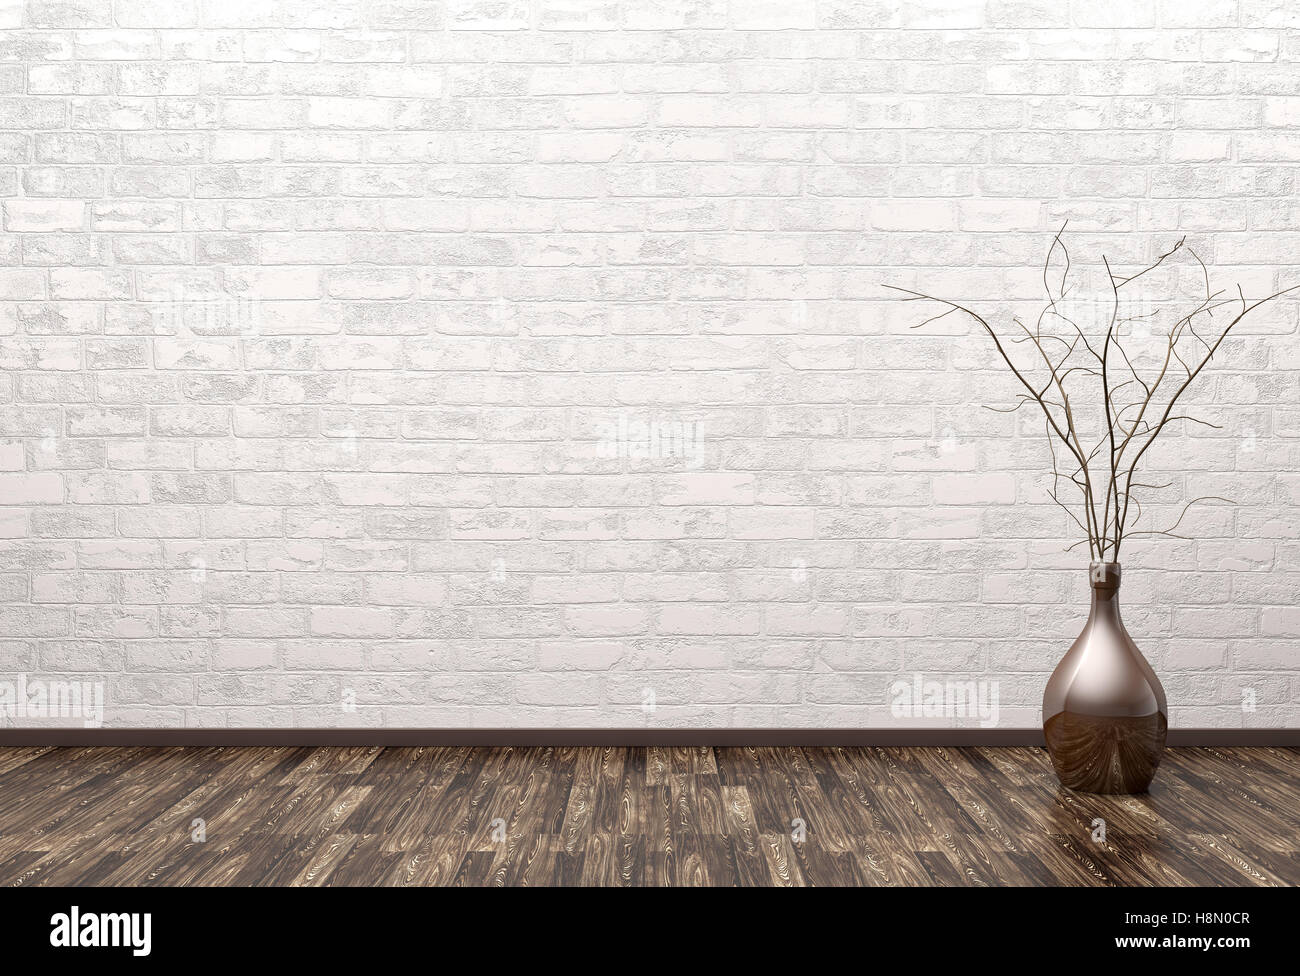 empty interior of room with vase over brick wall background 3d rendering